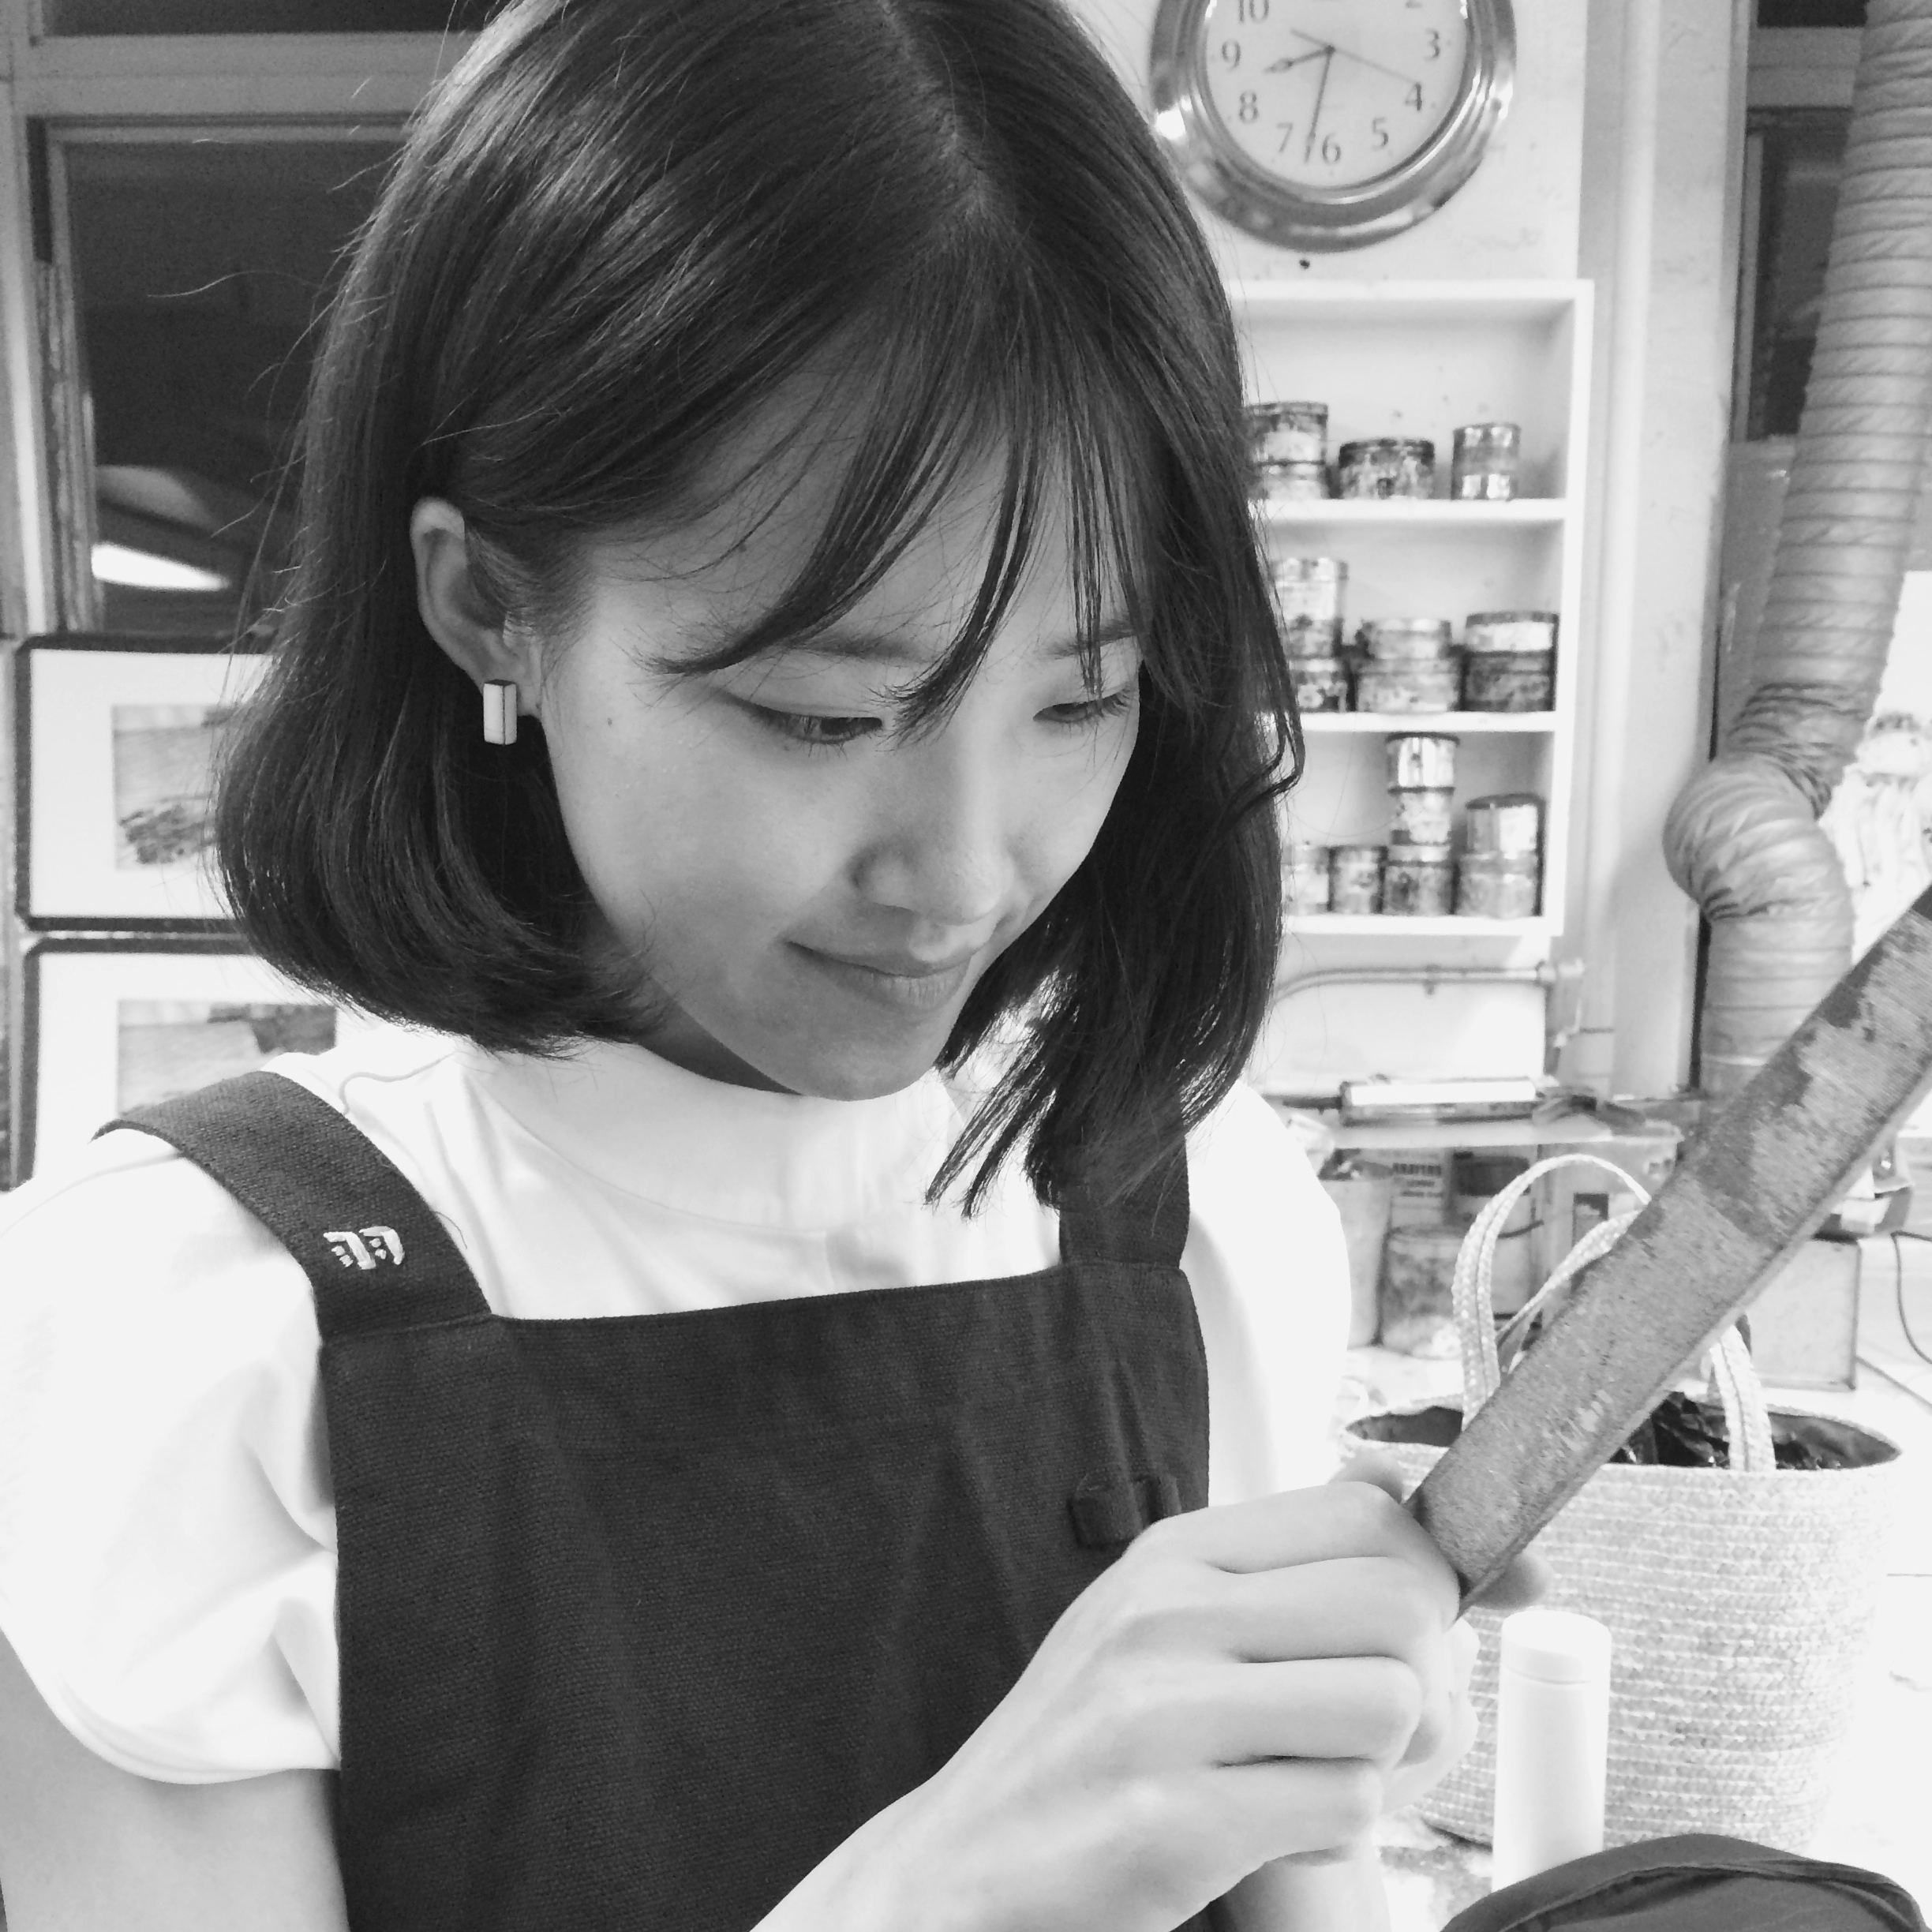 Yuchen Chang,  monitor since May 2015   Yuchen graduated School of the Art Institute of Chicago (MFA) in 2013.Her work is collected by Museum of Modern Art Library, New York and Joan Flasch Artists' Book Collection, Chicago. She can offer members assistance with her expertise in Etching.